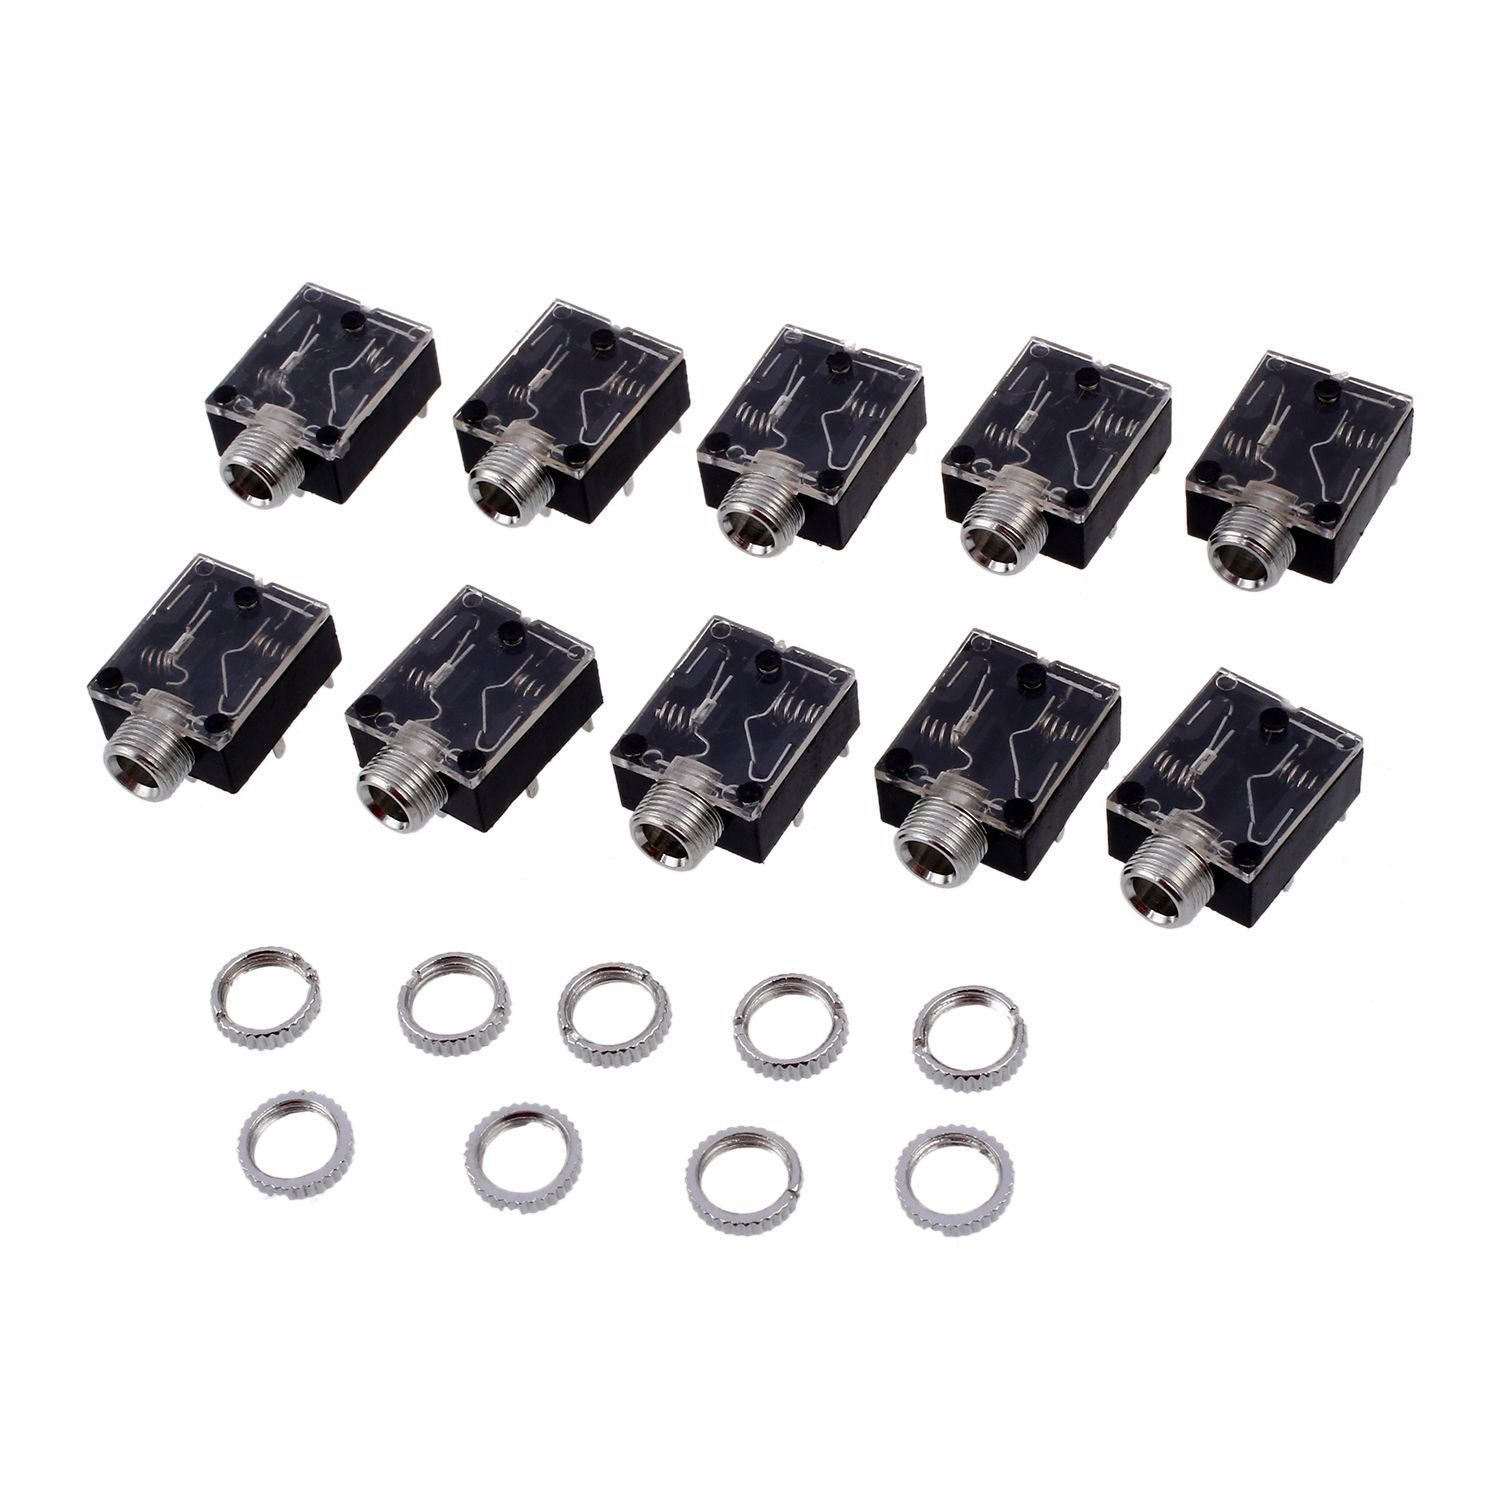 10pcs 3 5mm Headphones Stereo Audio Socket Jack With Nut 5